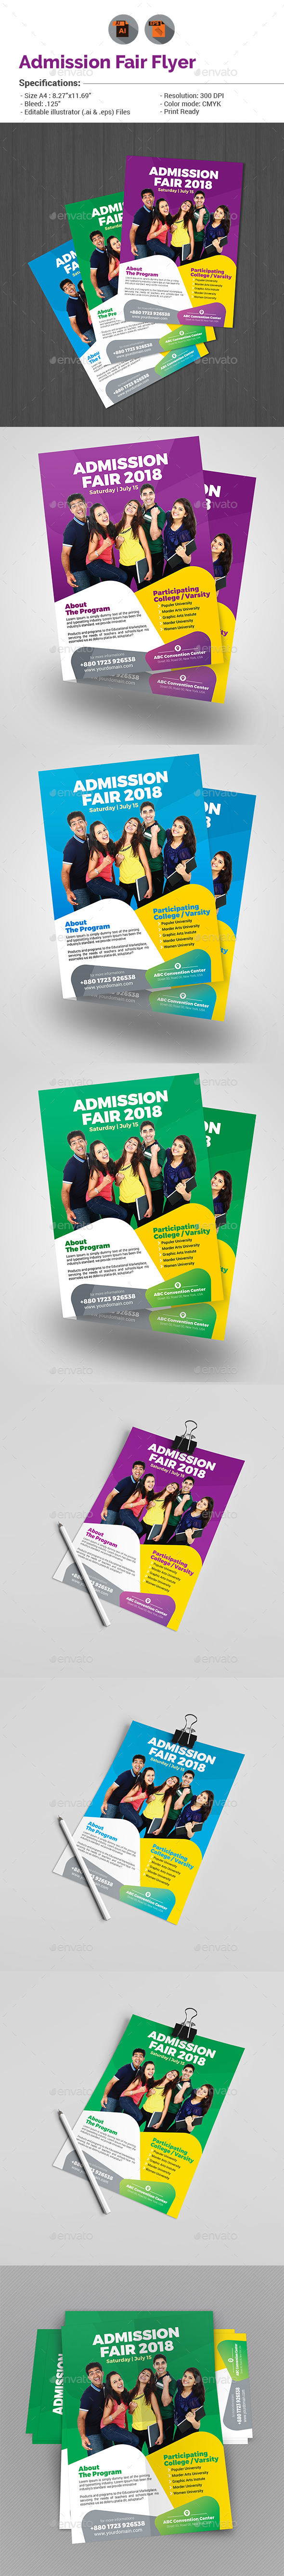 Admission Fair Flyer Template - Miscellaneous Events